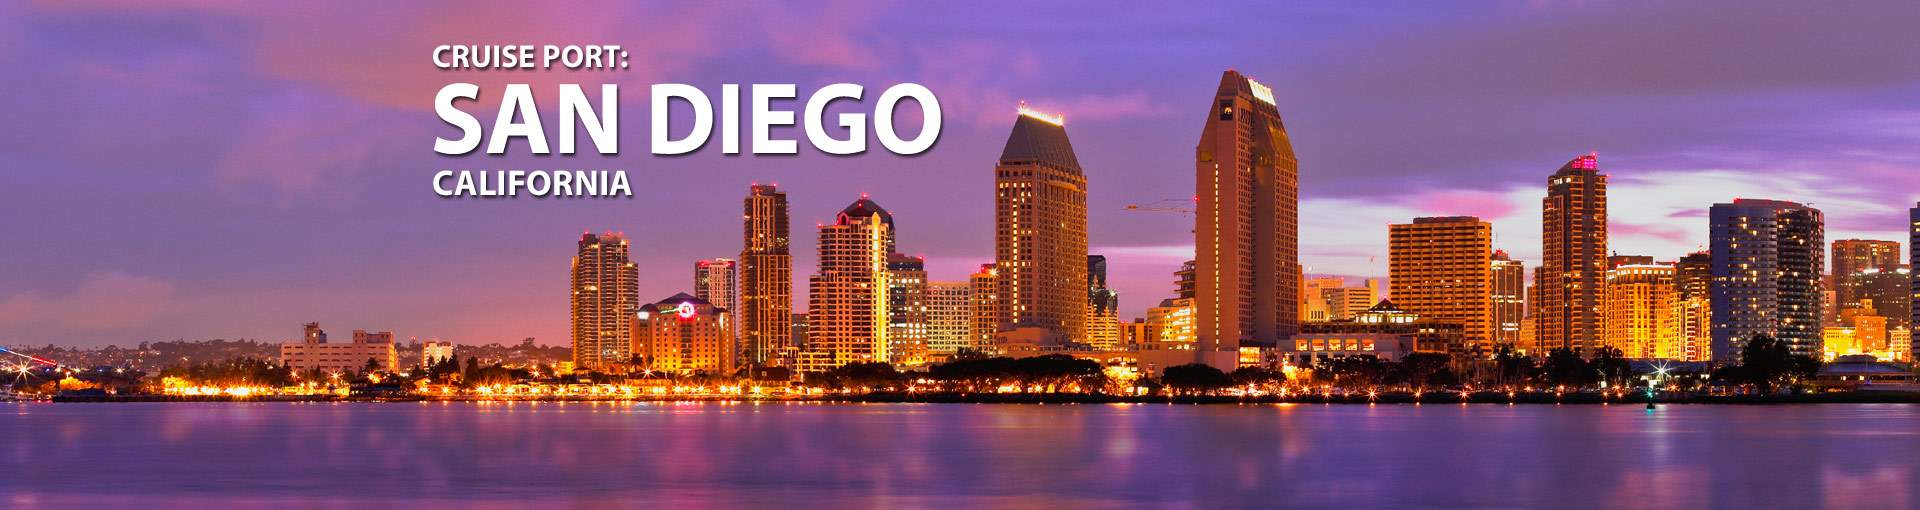 Cruise Port: San Diego, California